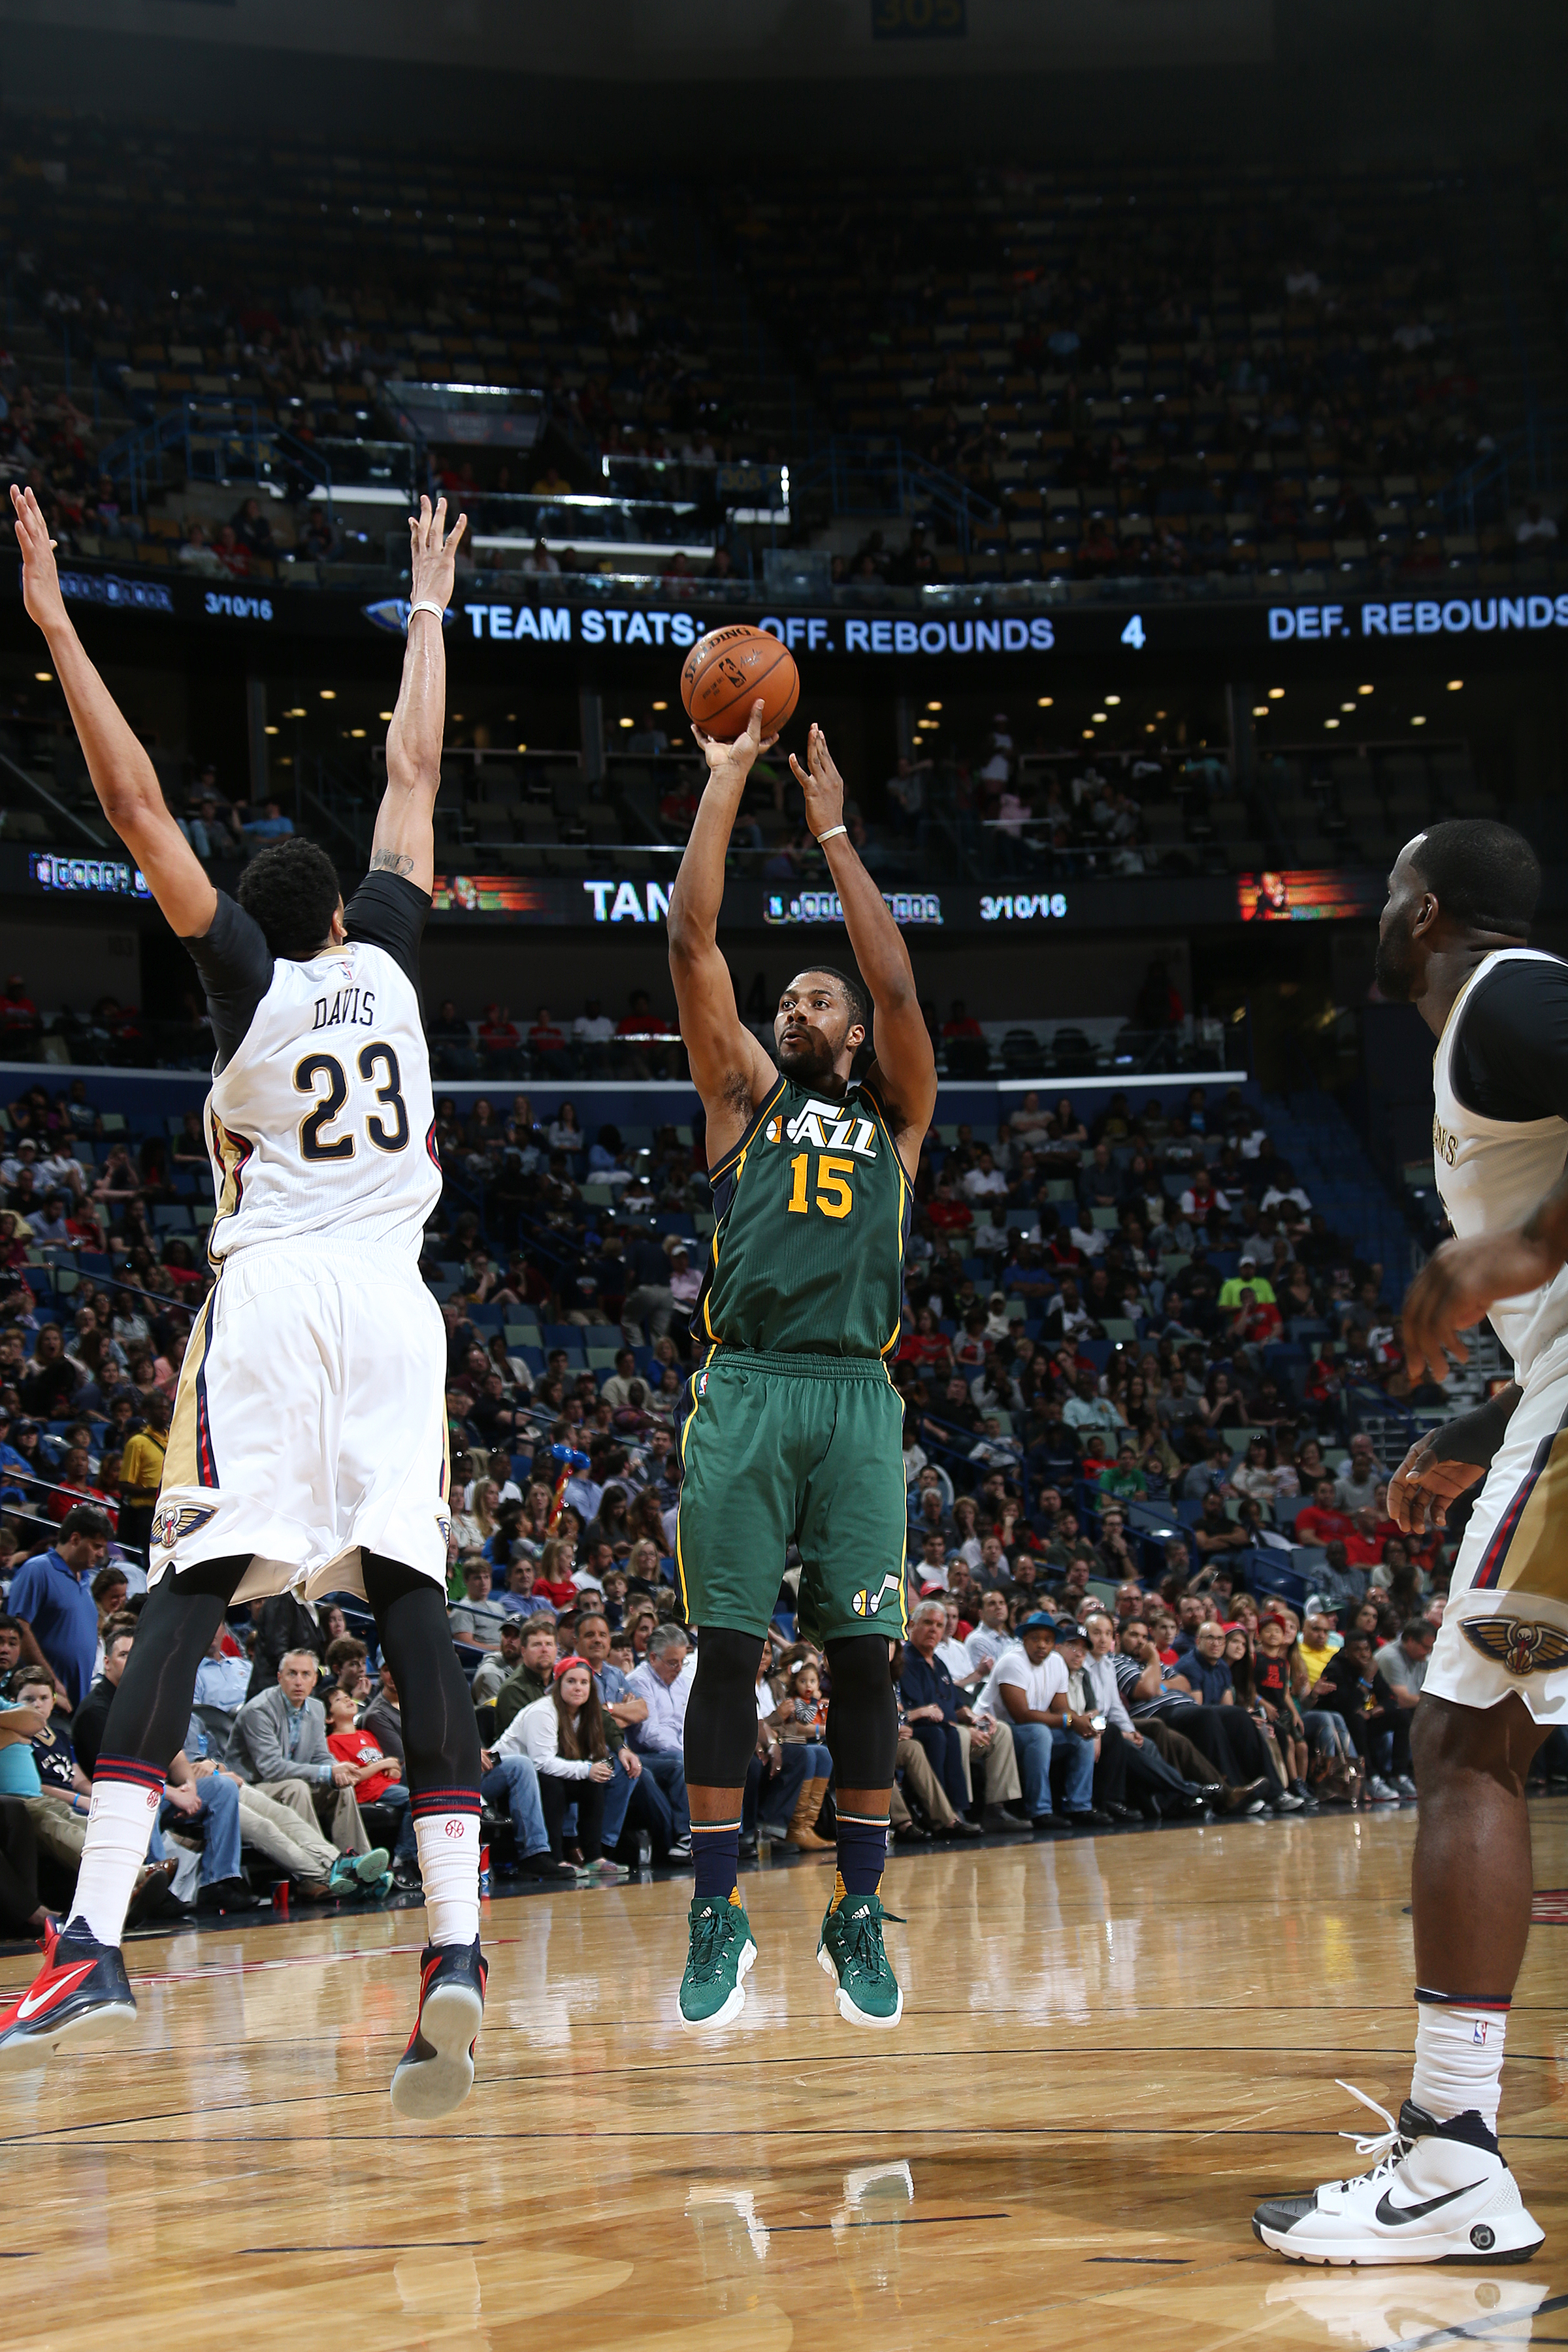 NEW ORLEANS, LA - MARCH 5:  Derrick Favors #15 of the Utah Jazz shoots the ball against the New Orleans Pelicans on March 5, 2016 at Smoothie King Center in New Orleans, Louisiana. (Photo by Layne Murdoch Jr./NBAE via Getty Images)